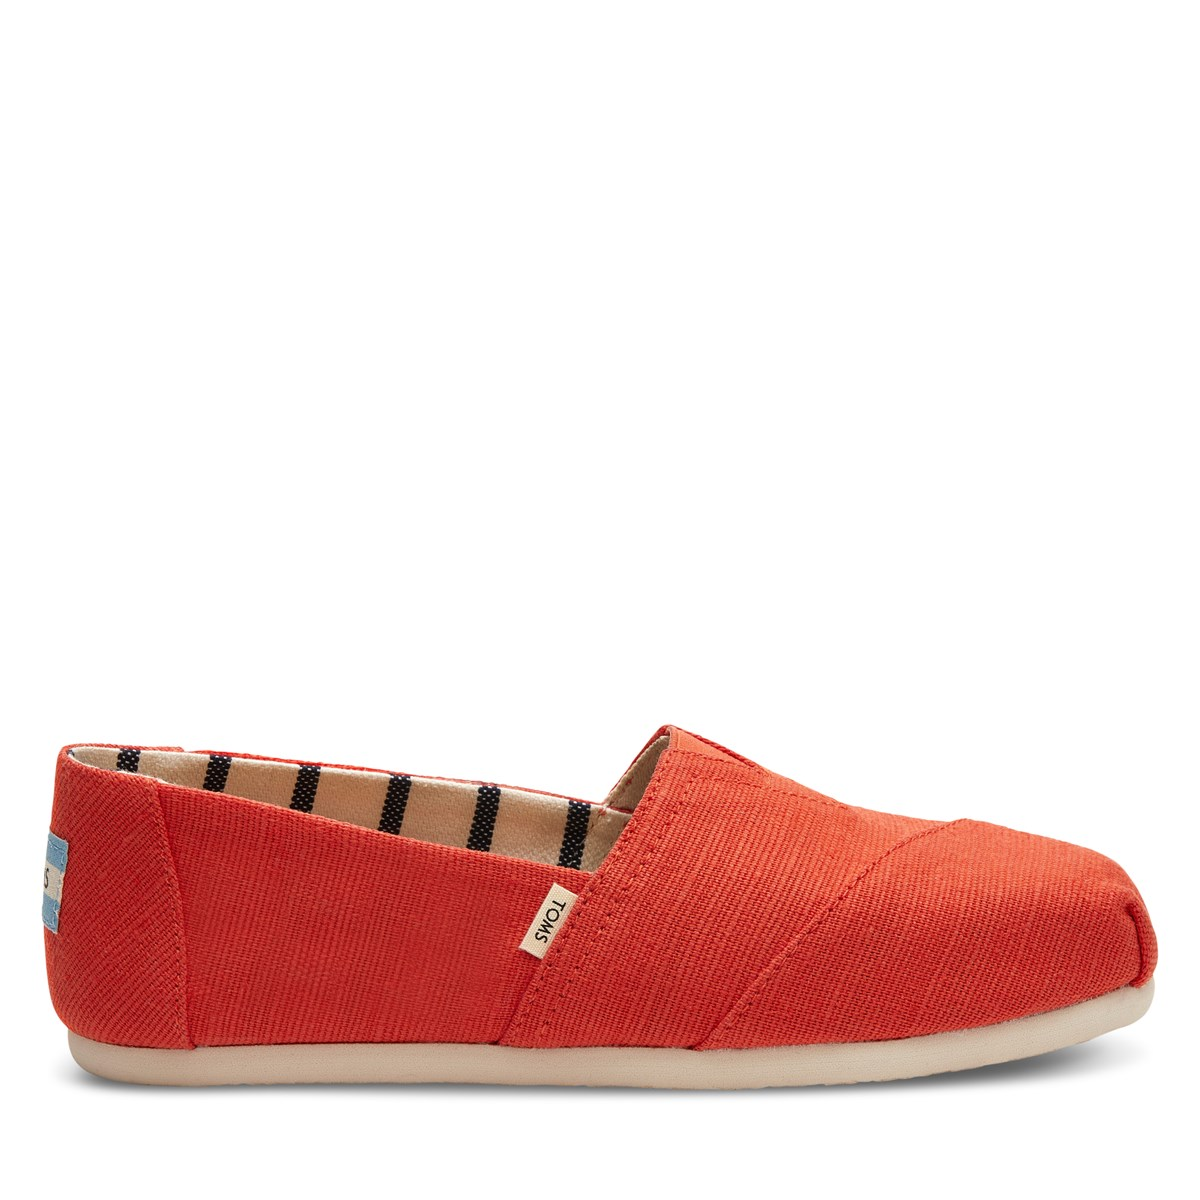 Women's Alpargata Classic Slip-on in Red